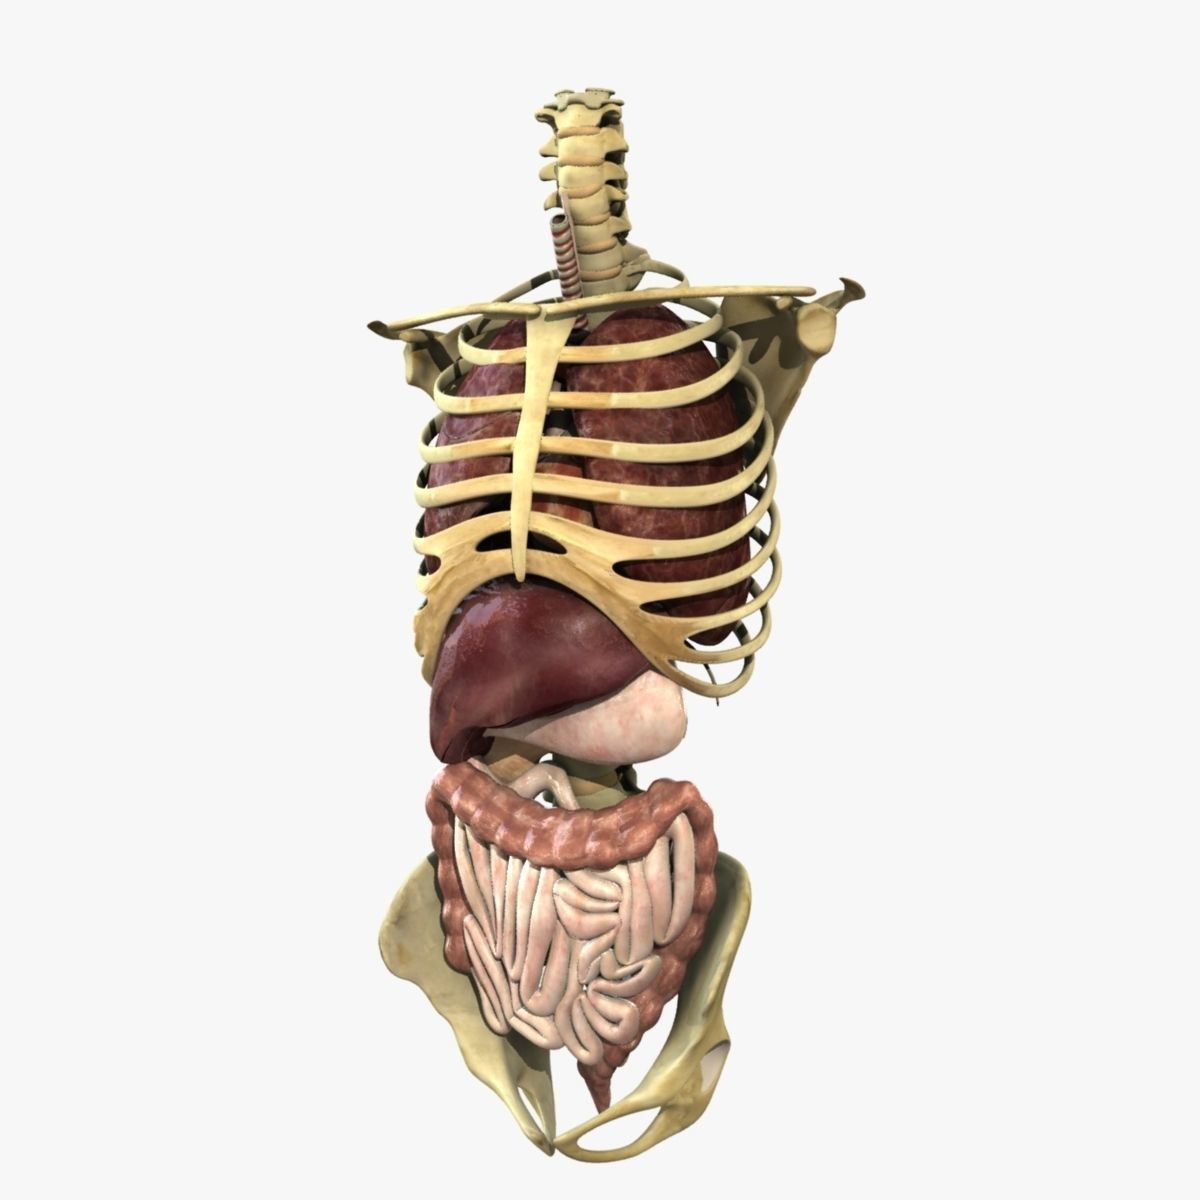 3D Human Skeleton Torso With Internal Organ Anatomy Rigged